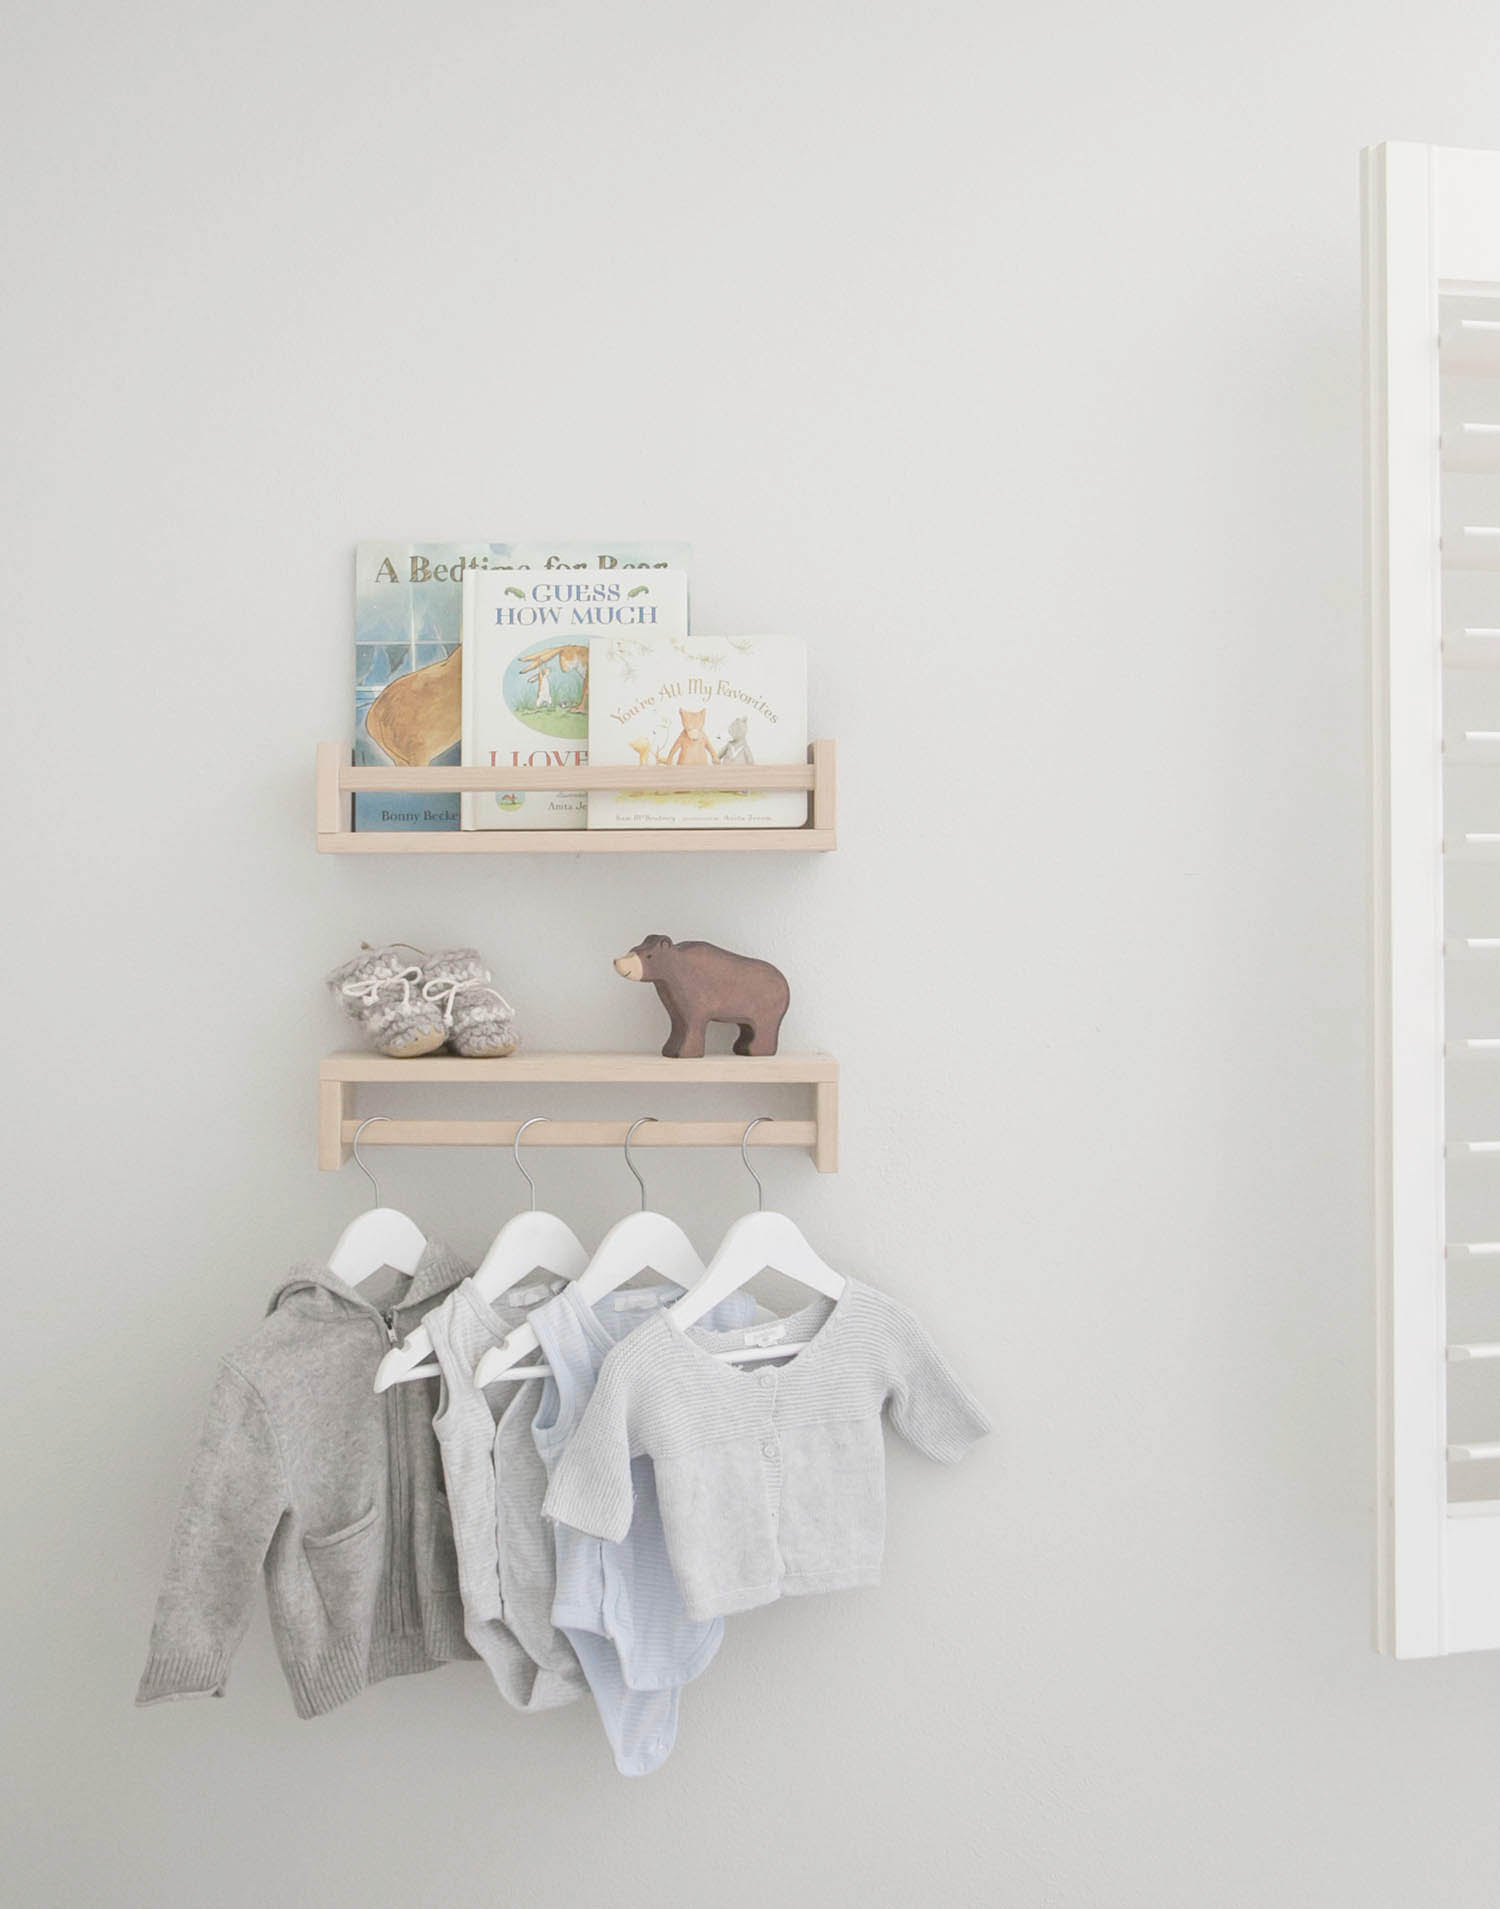 shelves with baby clothes, books and toys in kids nursery